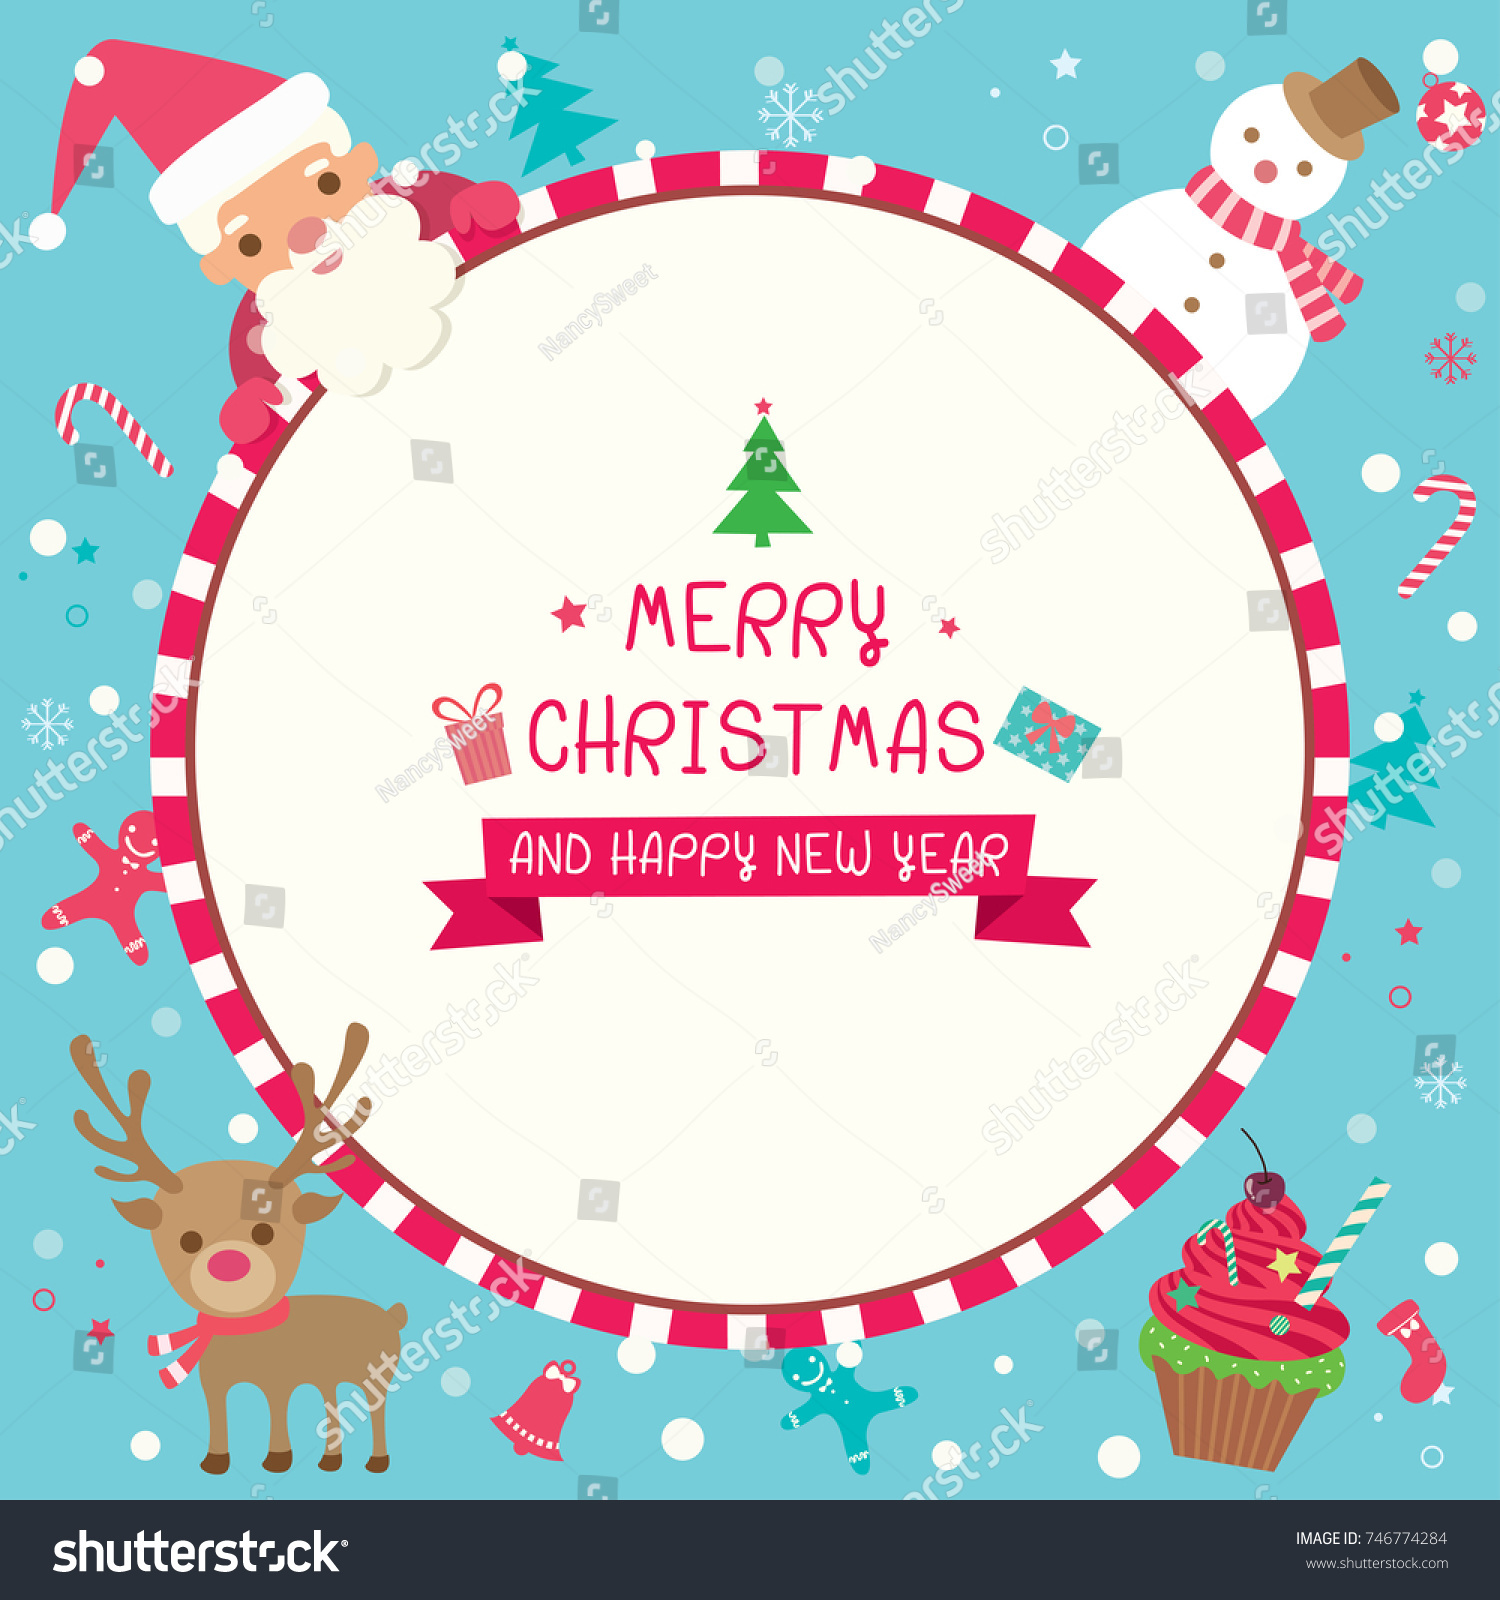 illustration vector of merry christmas and happy new year card design with santa claus snowman